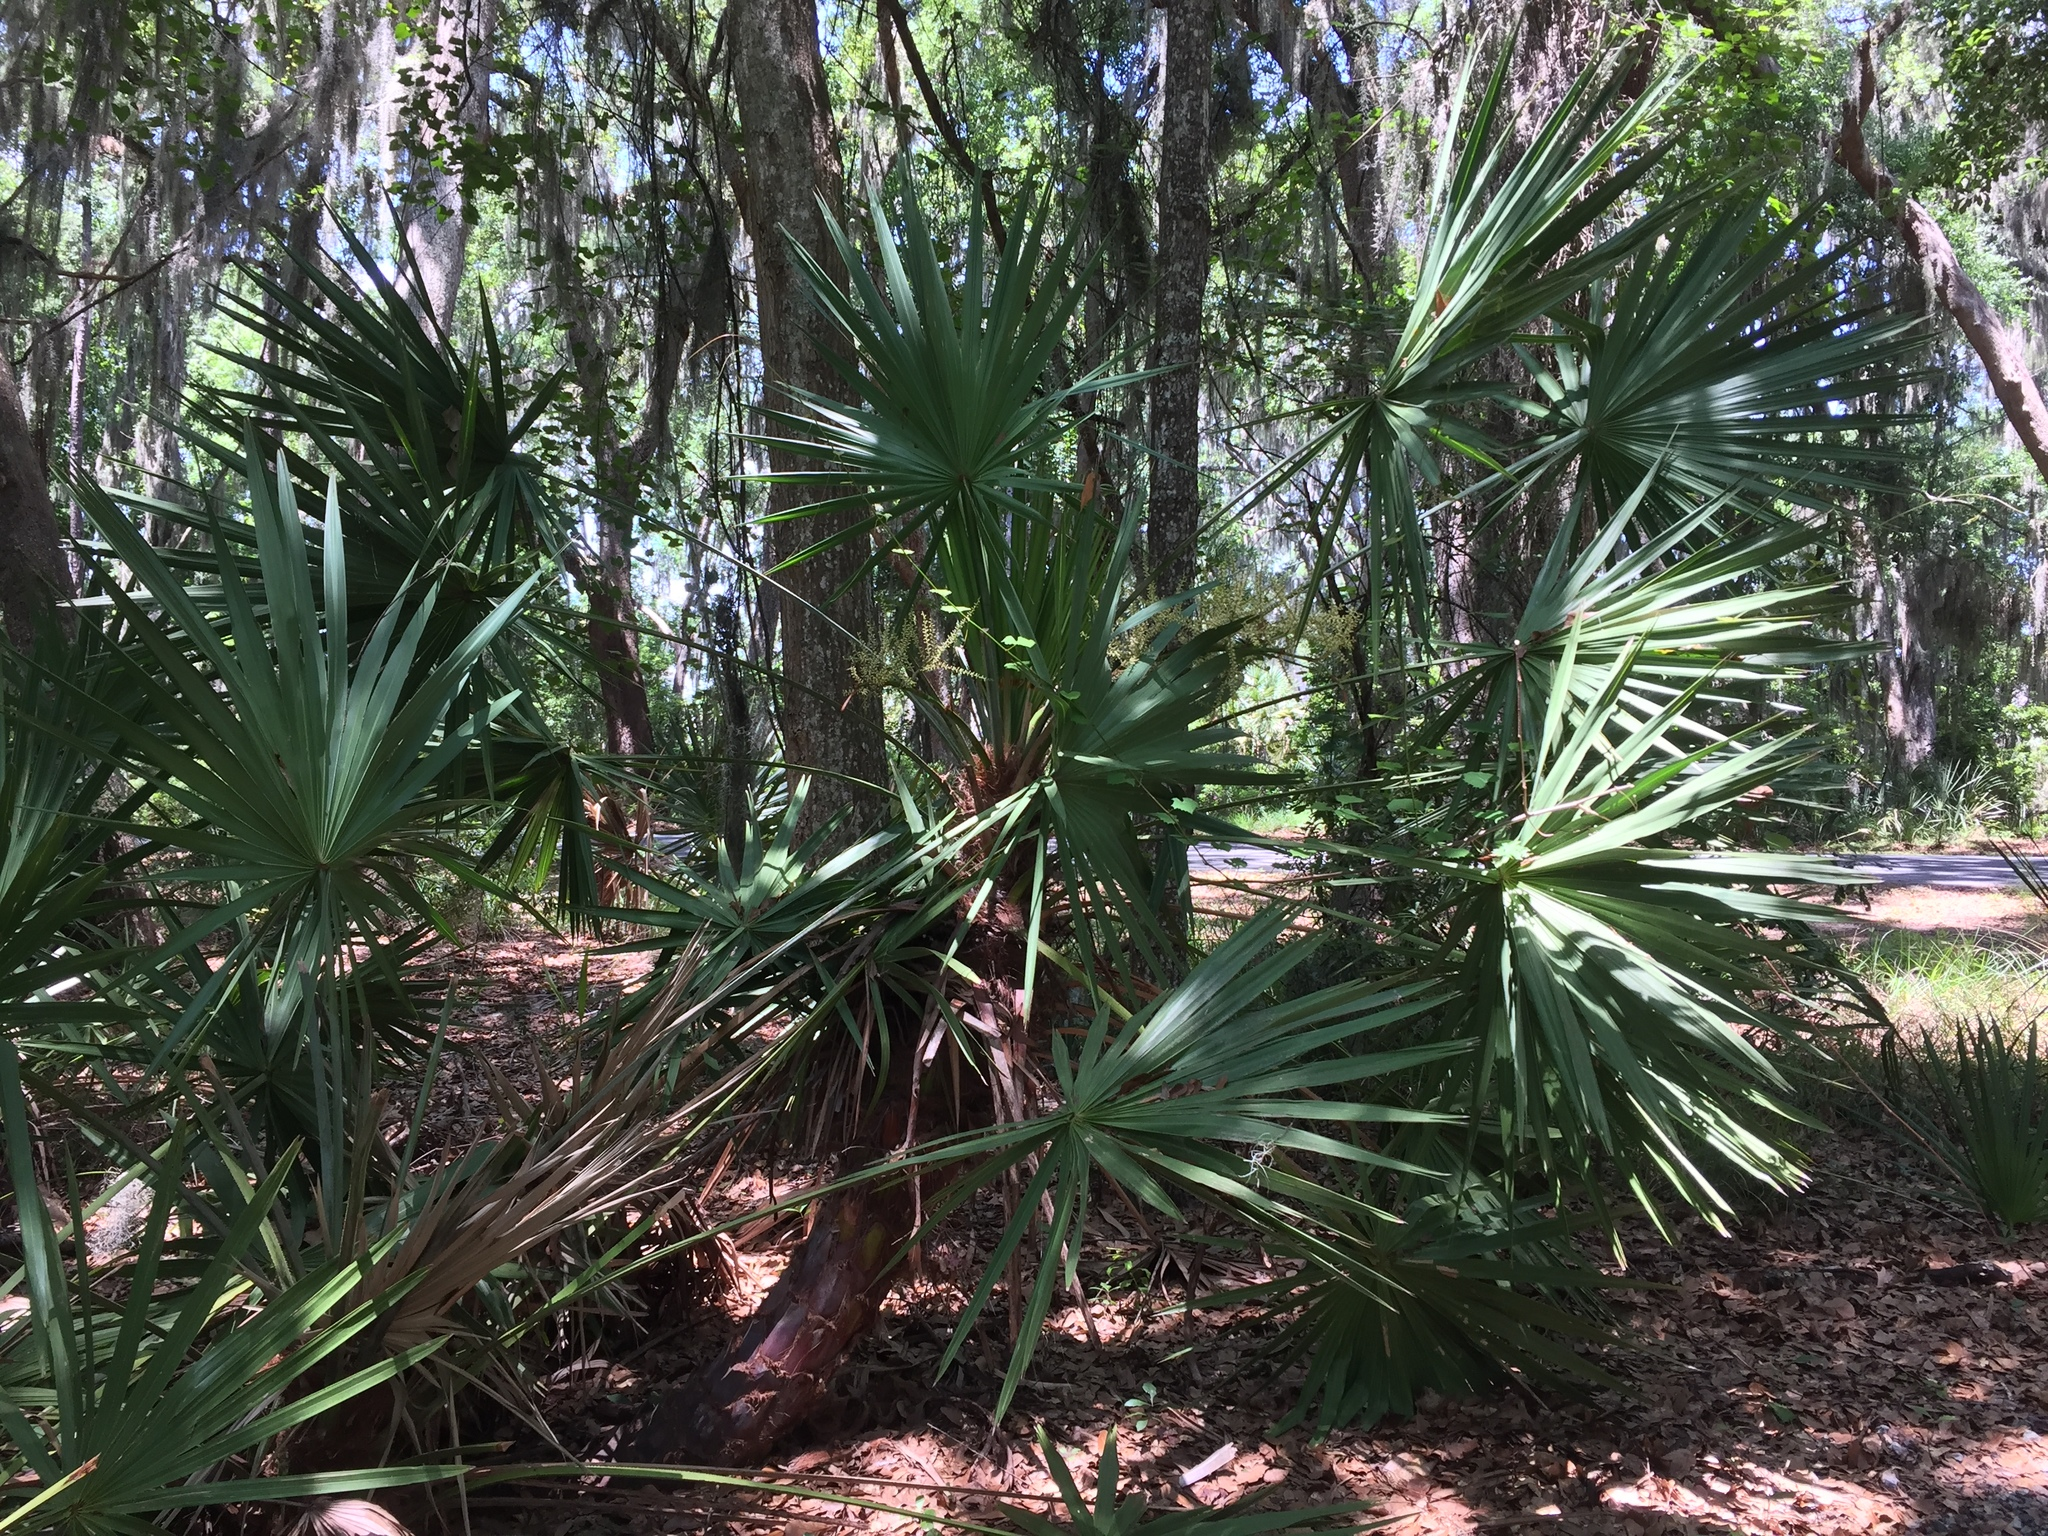 saw palmetto with flower spikes